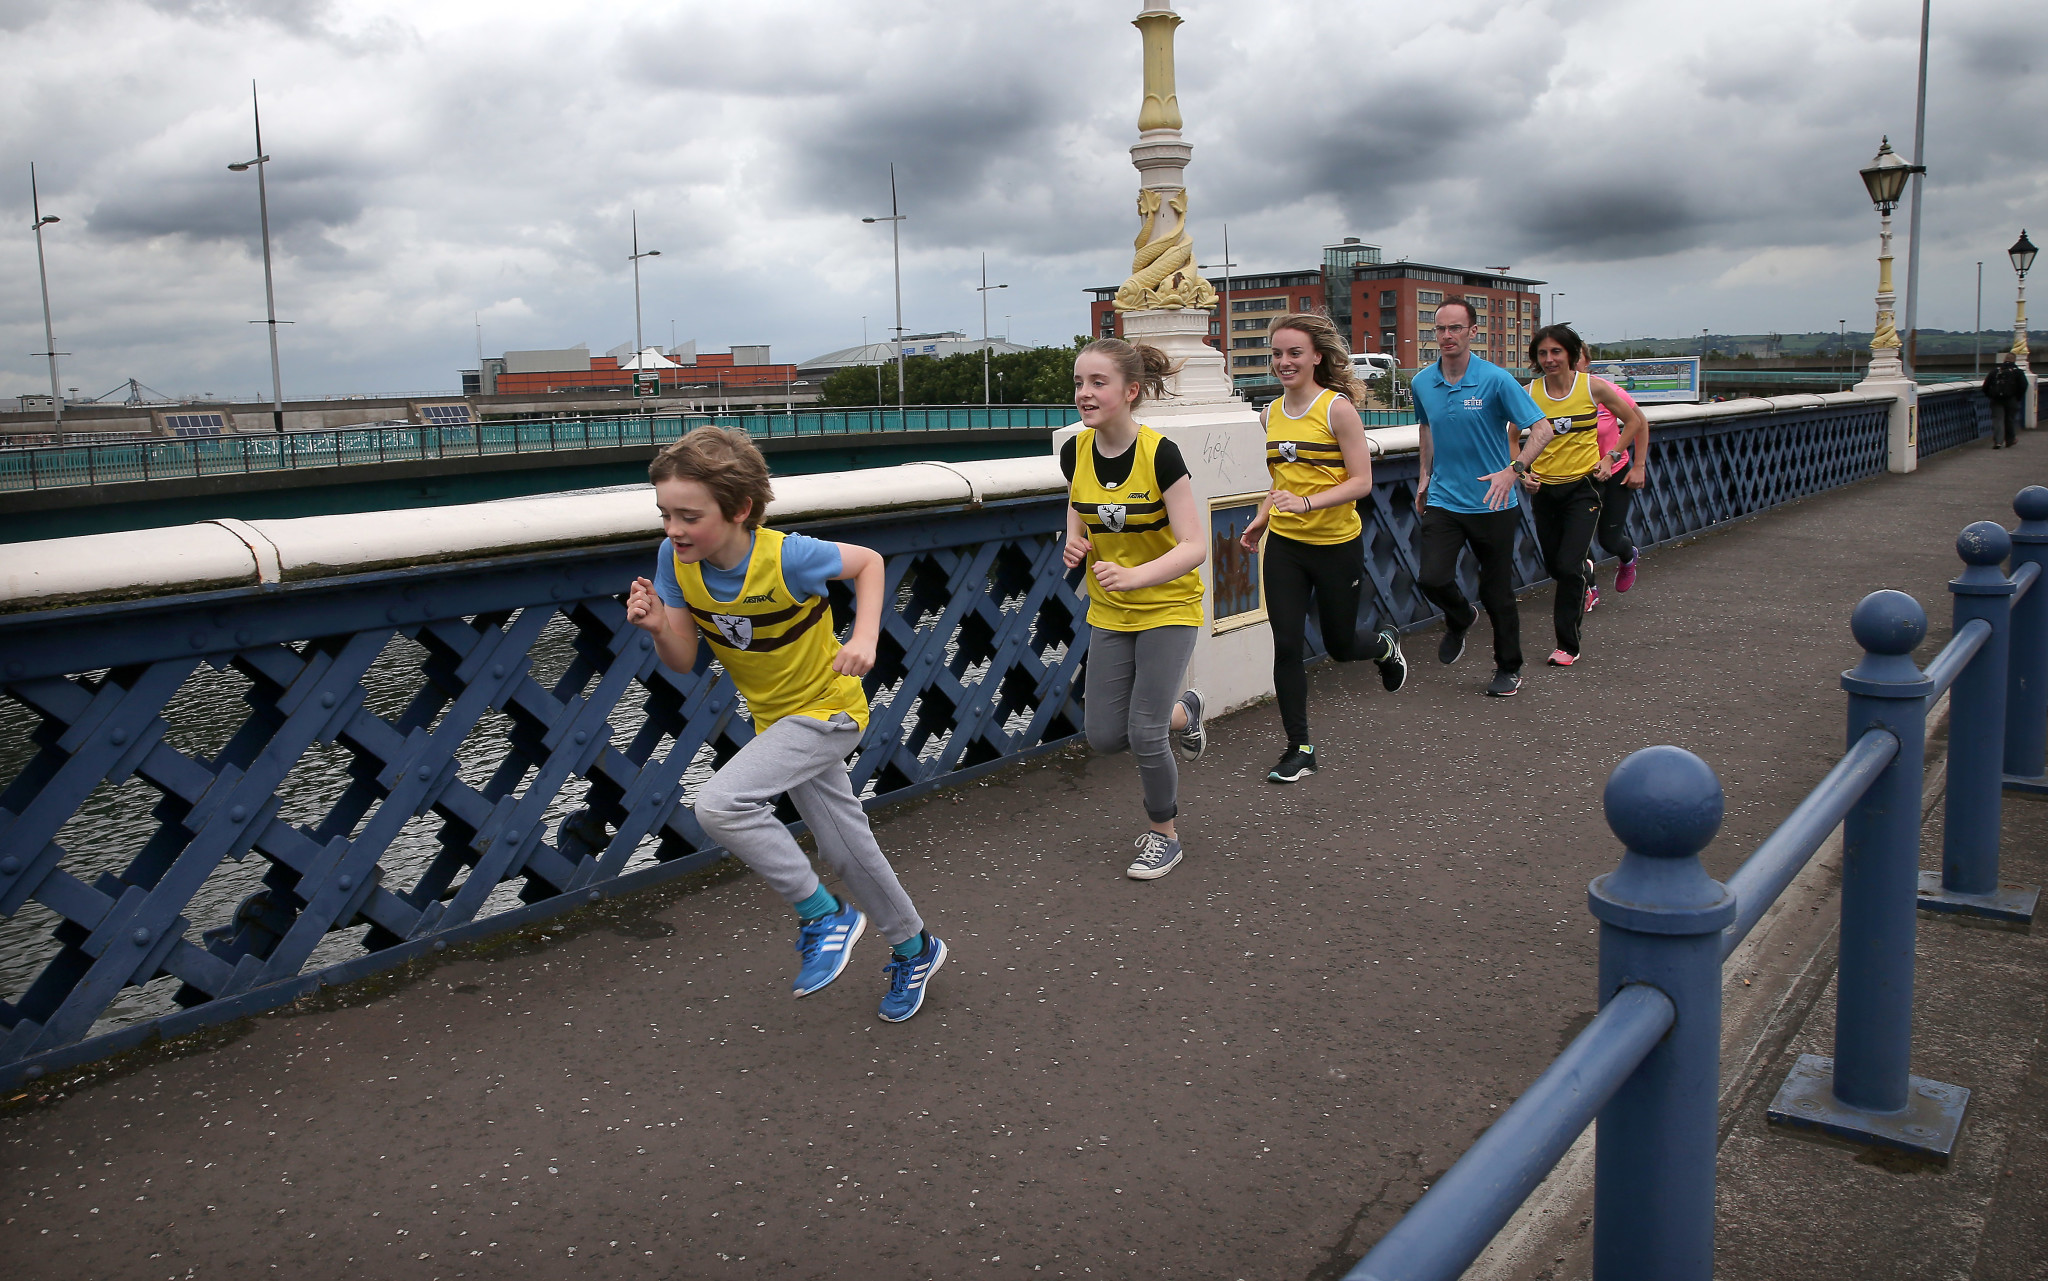 Laganside 10k launch photograph with Belfast Lord mayor Brian Kingston. Photograph taken at the Queens Bridge / Big Fish area of the Laganside. 30th June 2016 Photograph By Declan Roughan (L-R) Finn Harding, Erin Harding, Caitlin Maguire, Kent Swann, Gladys Ganiel and Jenny McCready.